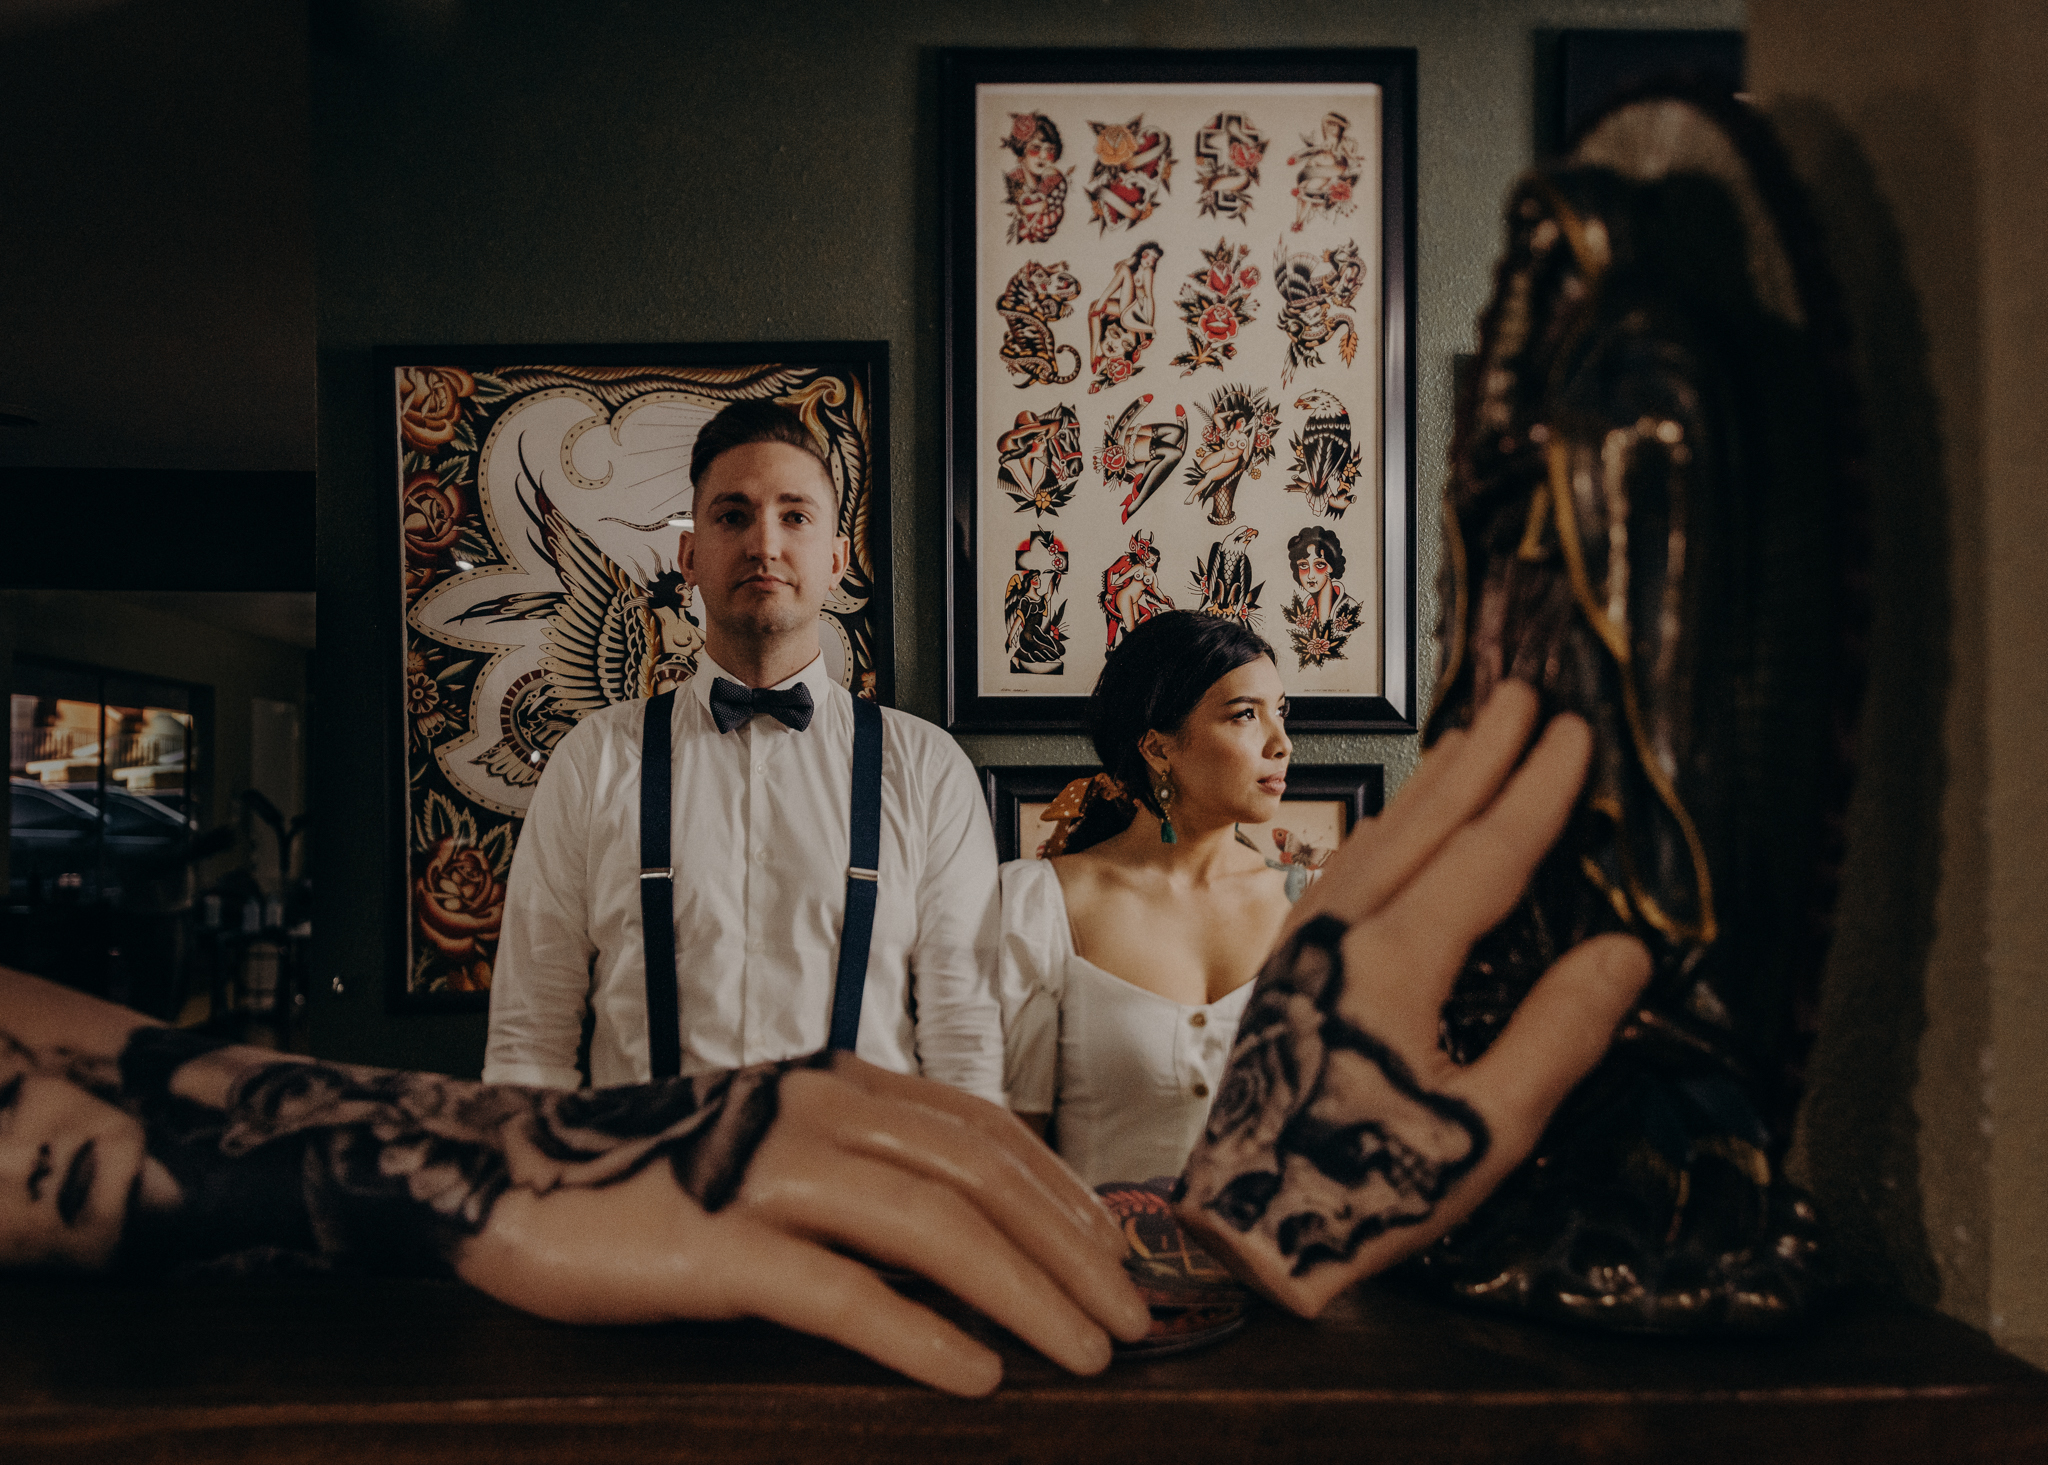 Wedding Photographer in LA - Los Angeles Wedding Photos - Tattoo Shop Engagement Session - IsaiahAndTaylor.com-024.jpg